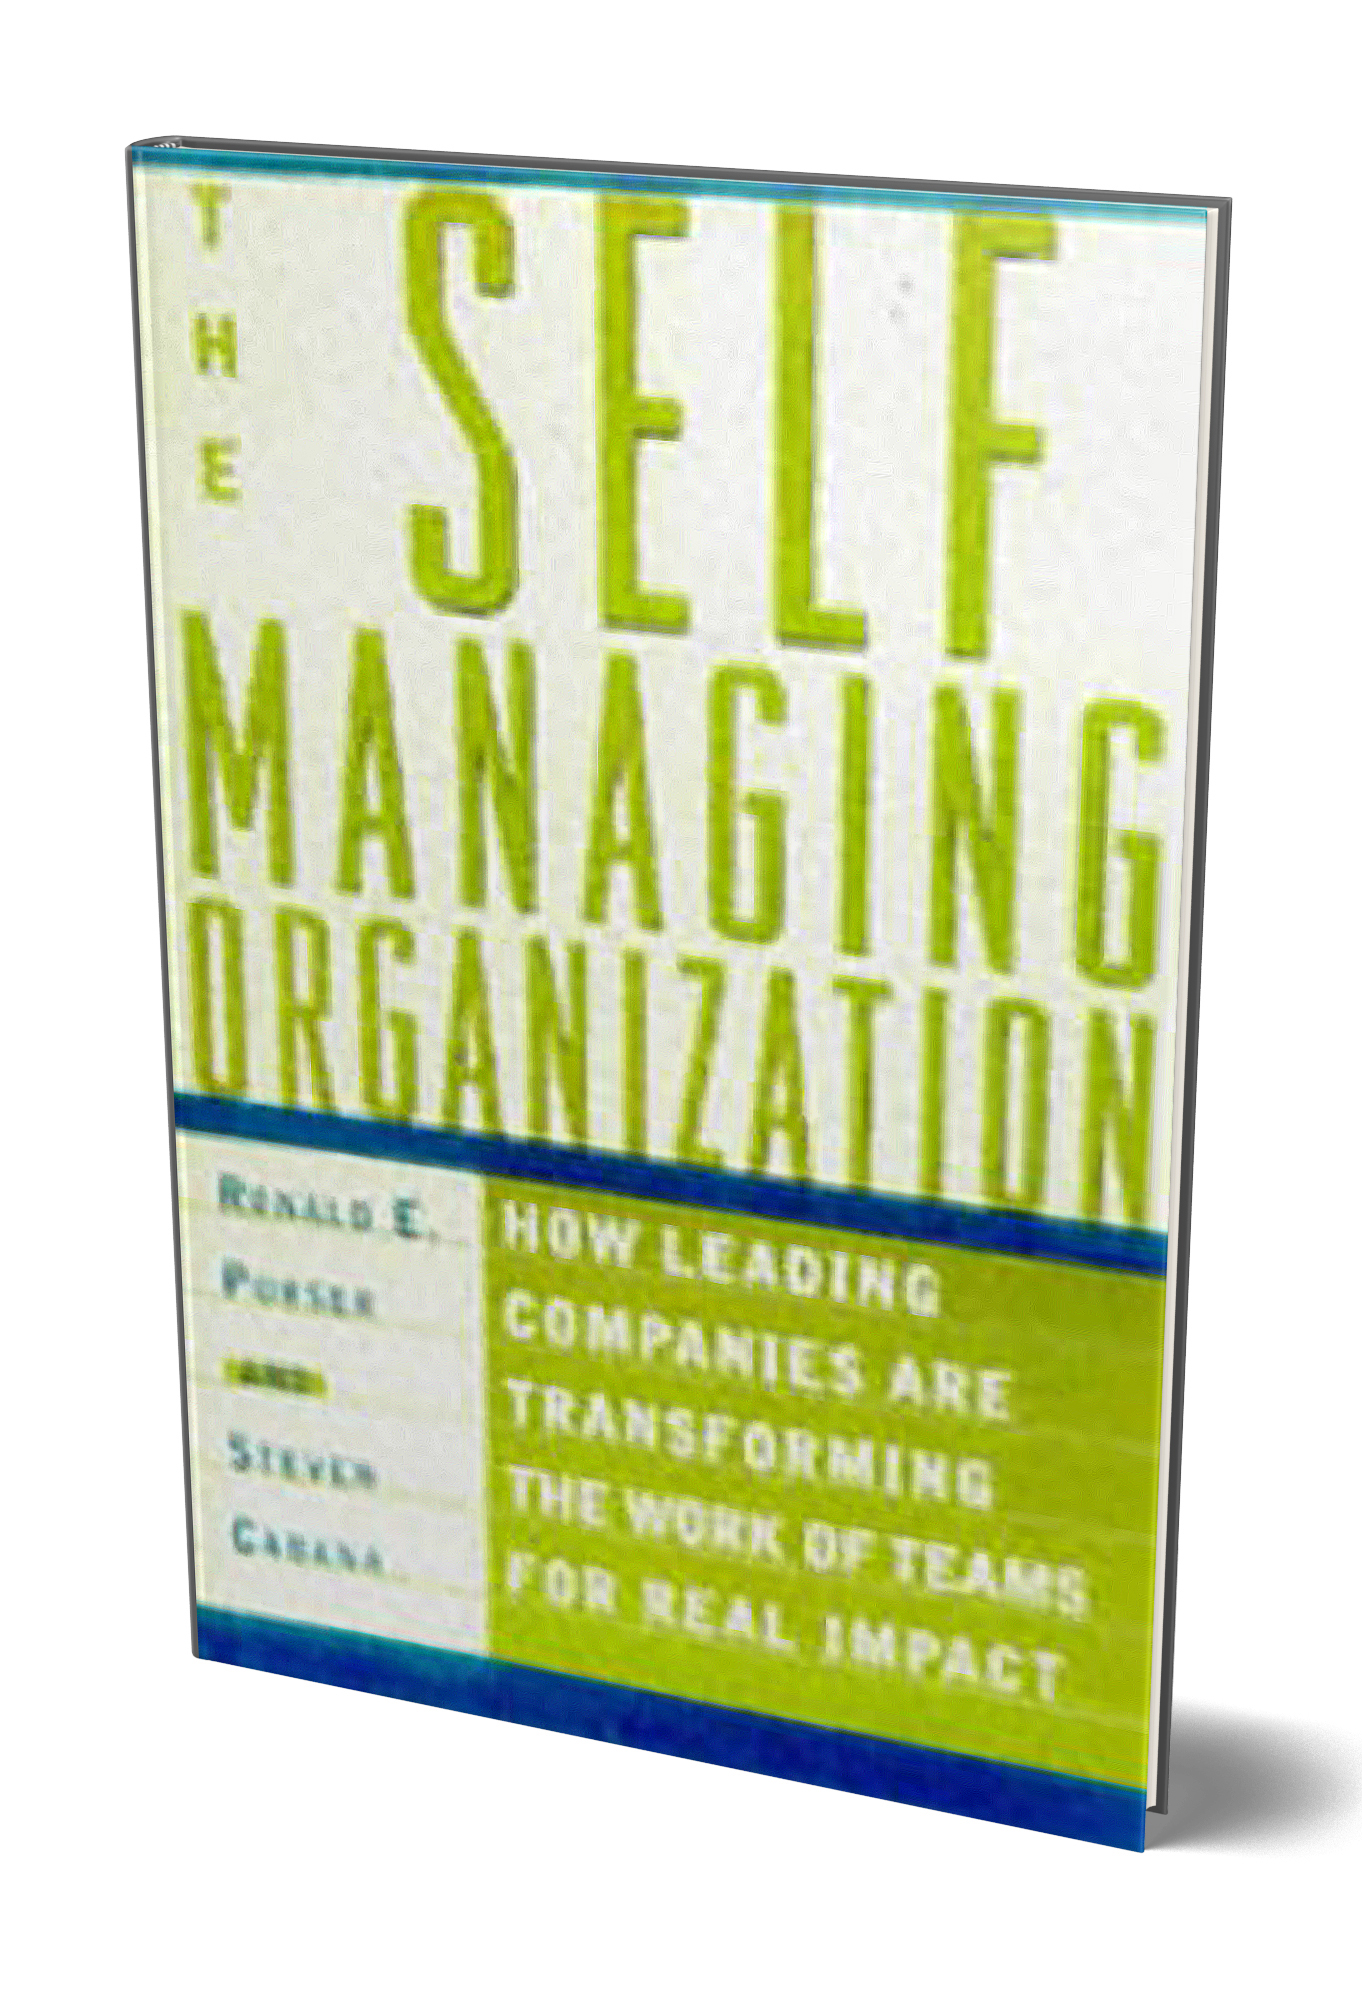 The Self-Managing Organization : How Leading Companies Are Transforming the Work of Teams for Real Impact